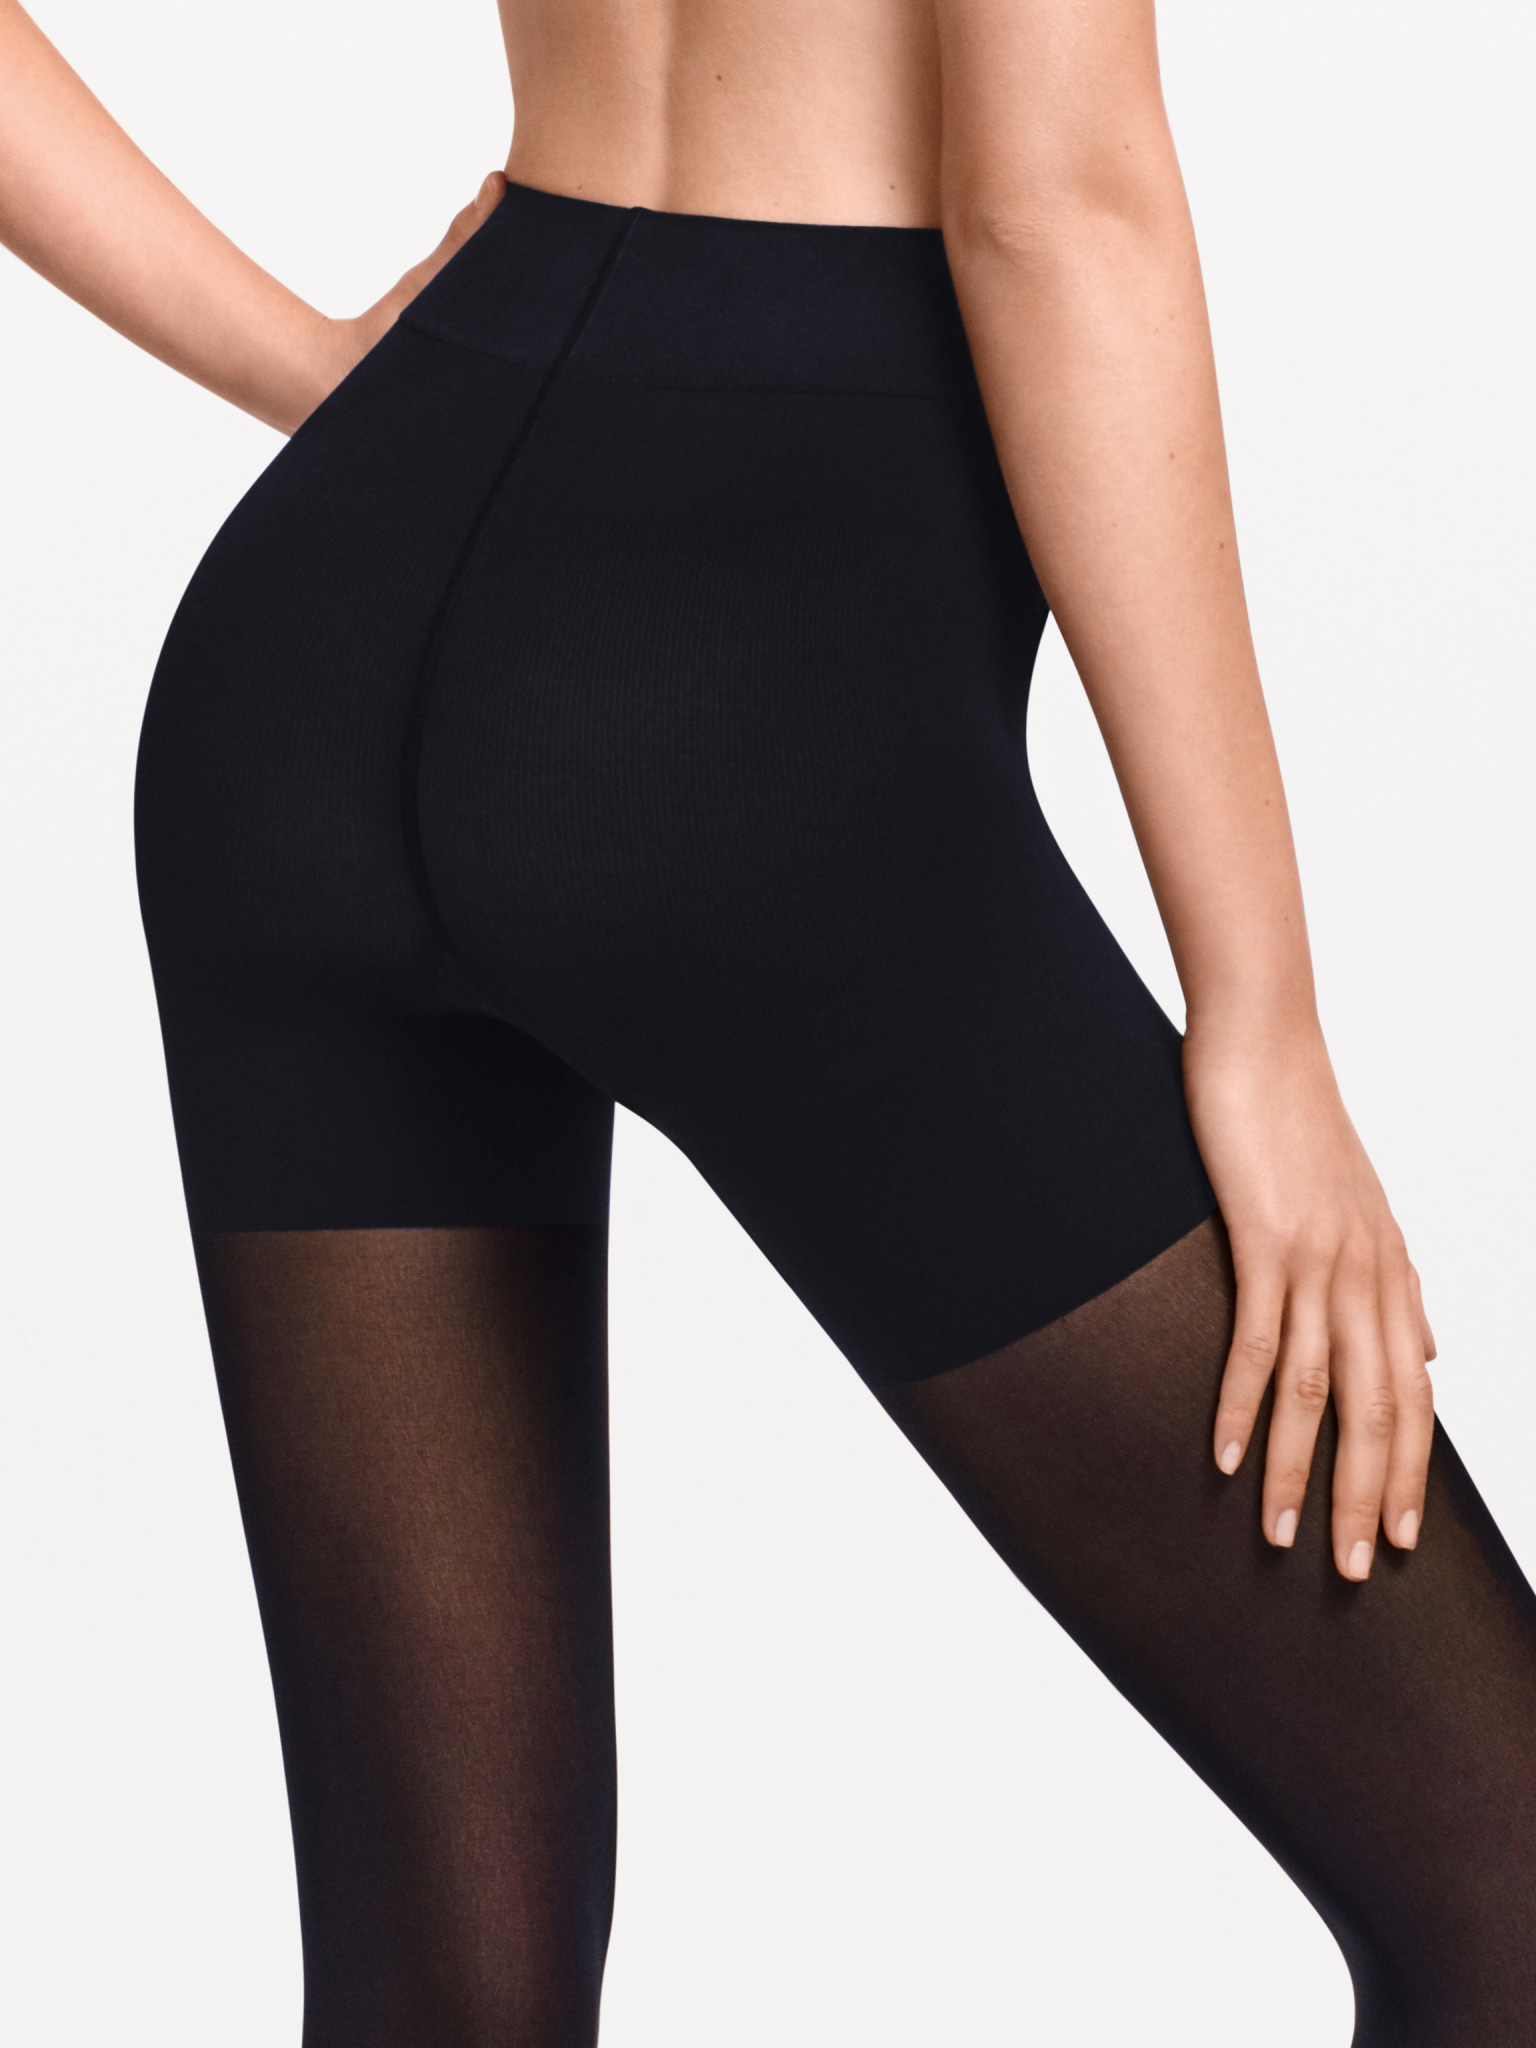 WOLFORD 14669 Tummy 66 Control Top Tights